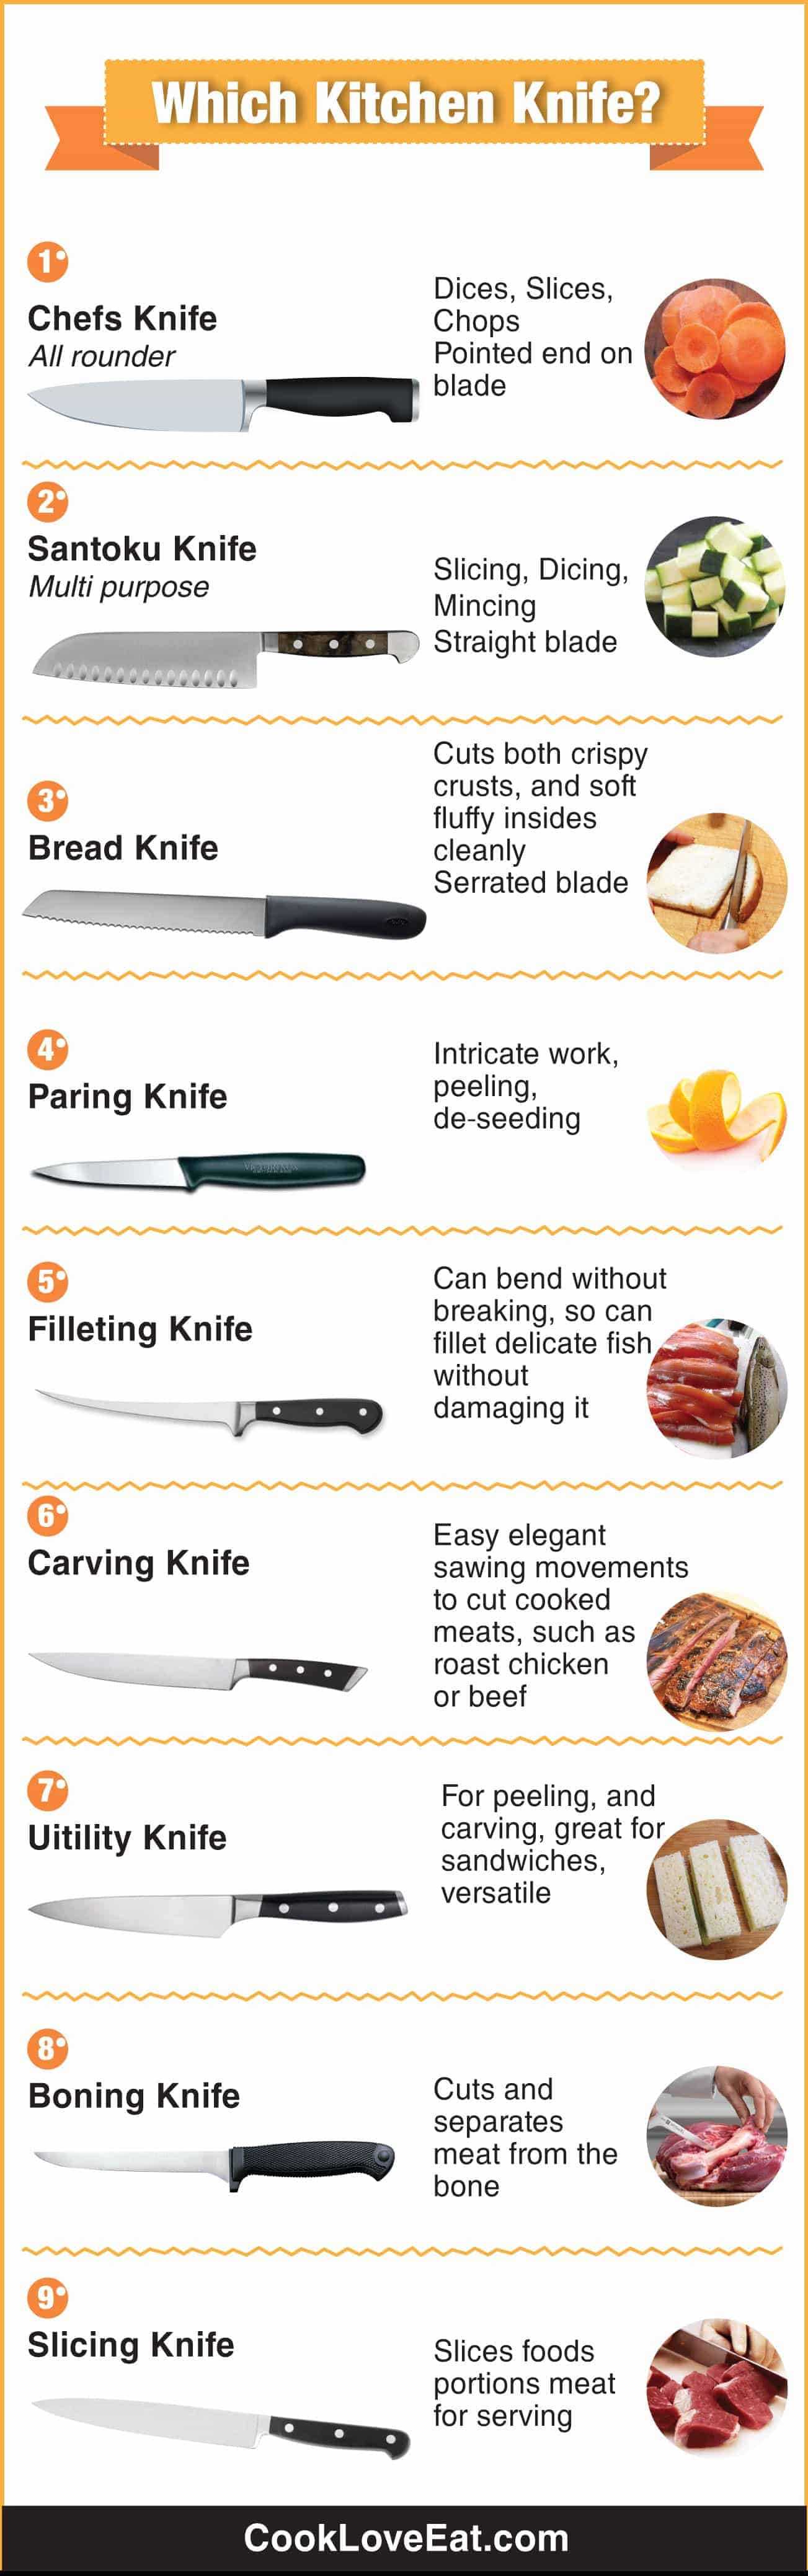 Which Kitchen Knife?